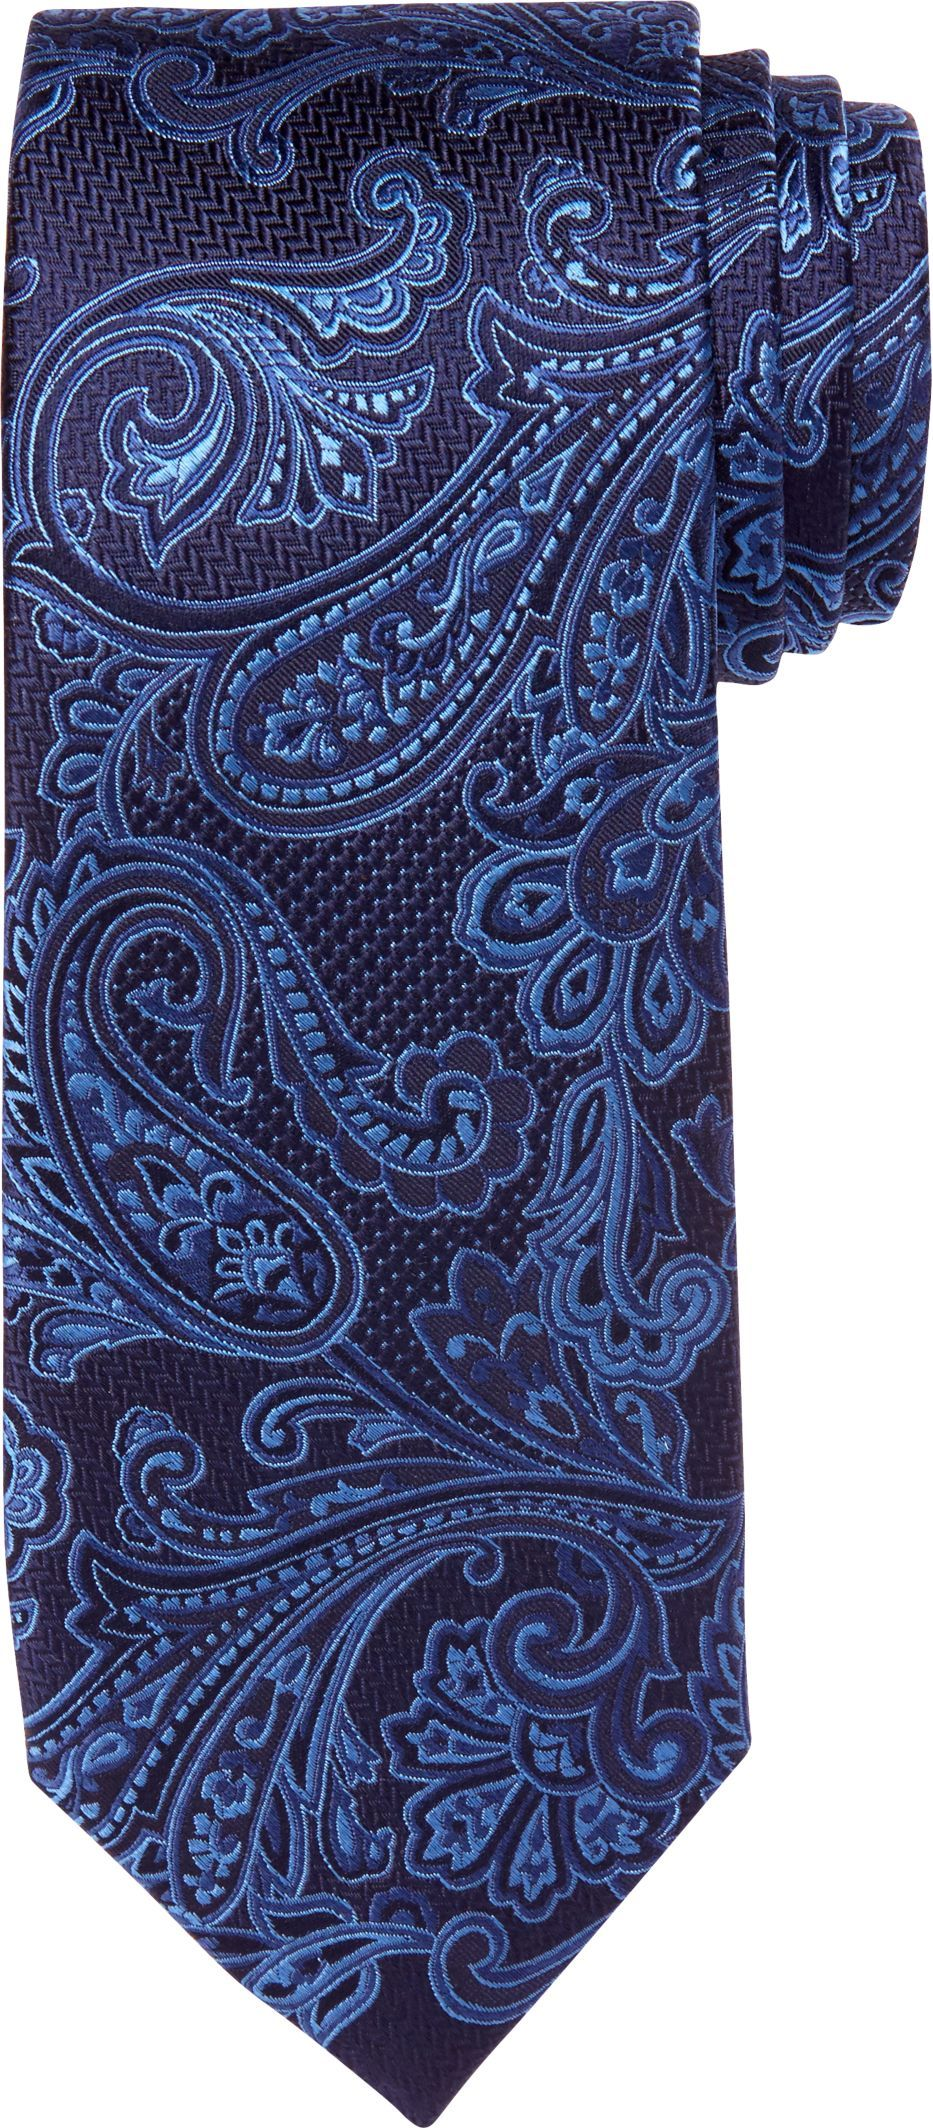 Reserve Collection Paisley Tie